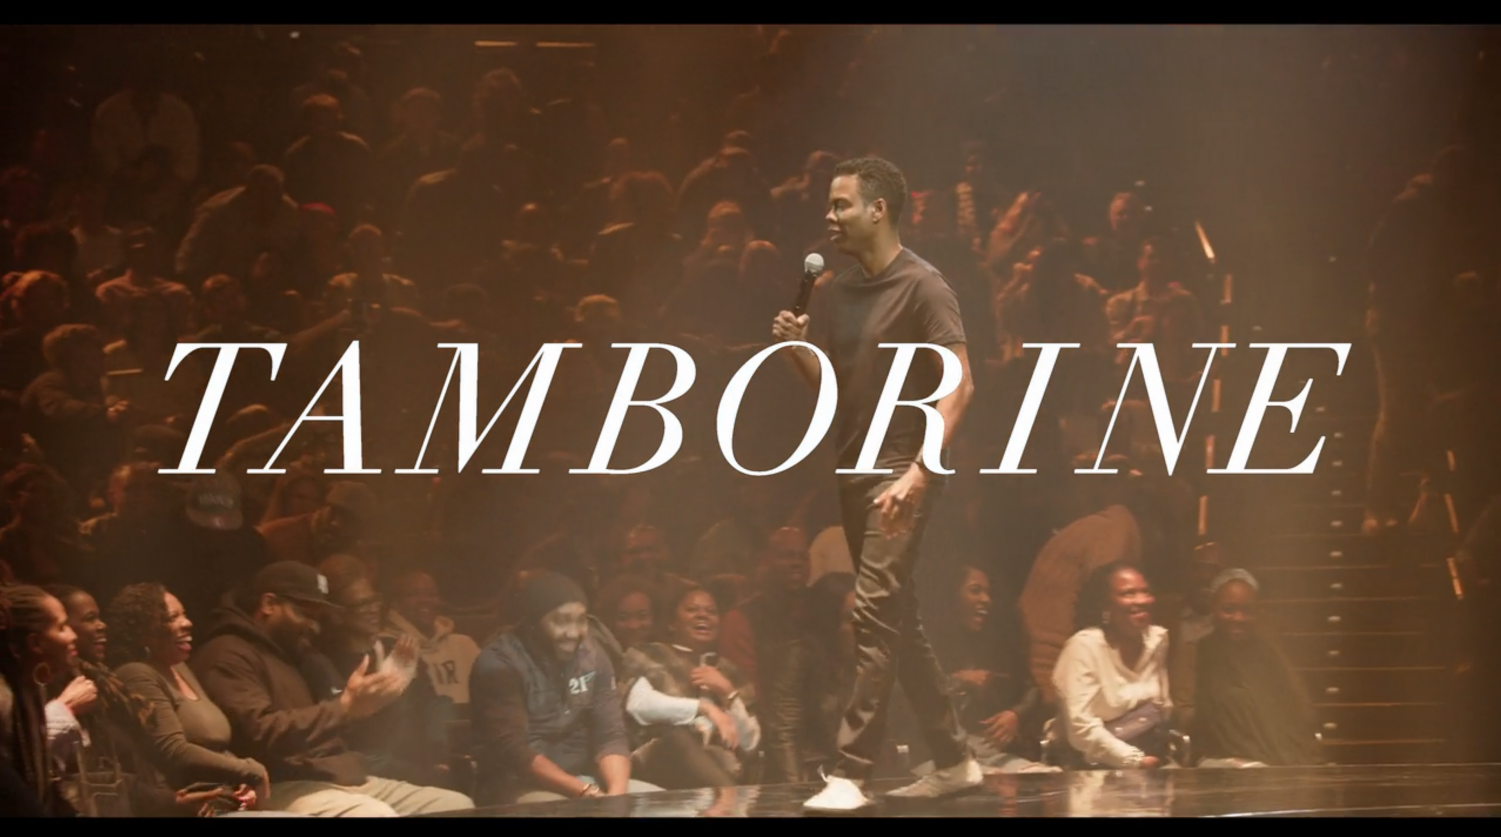 Chris Rock is just the latest comedian to get his very own stand-up comedy on Netflix. Tamborine was released on Feb. 14.